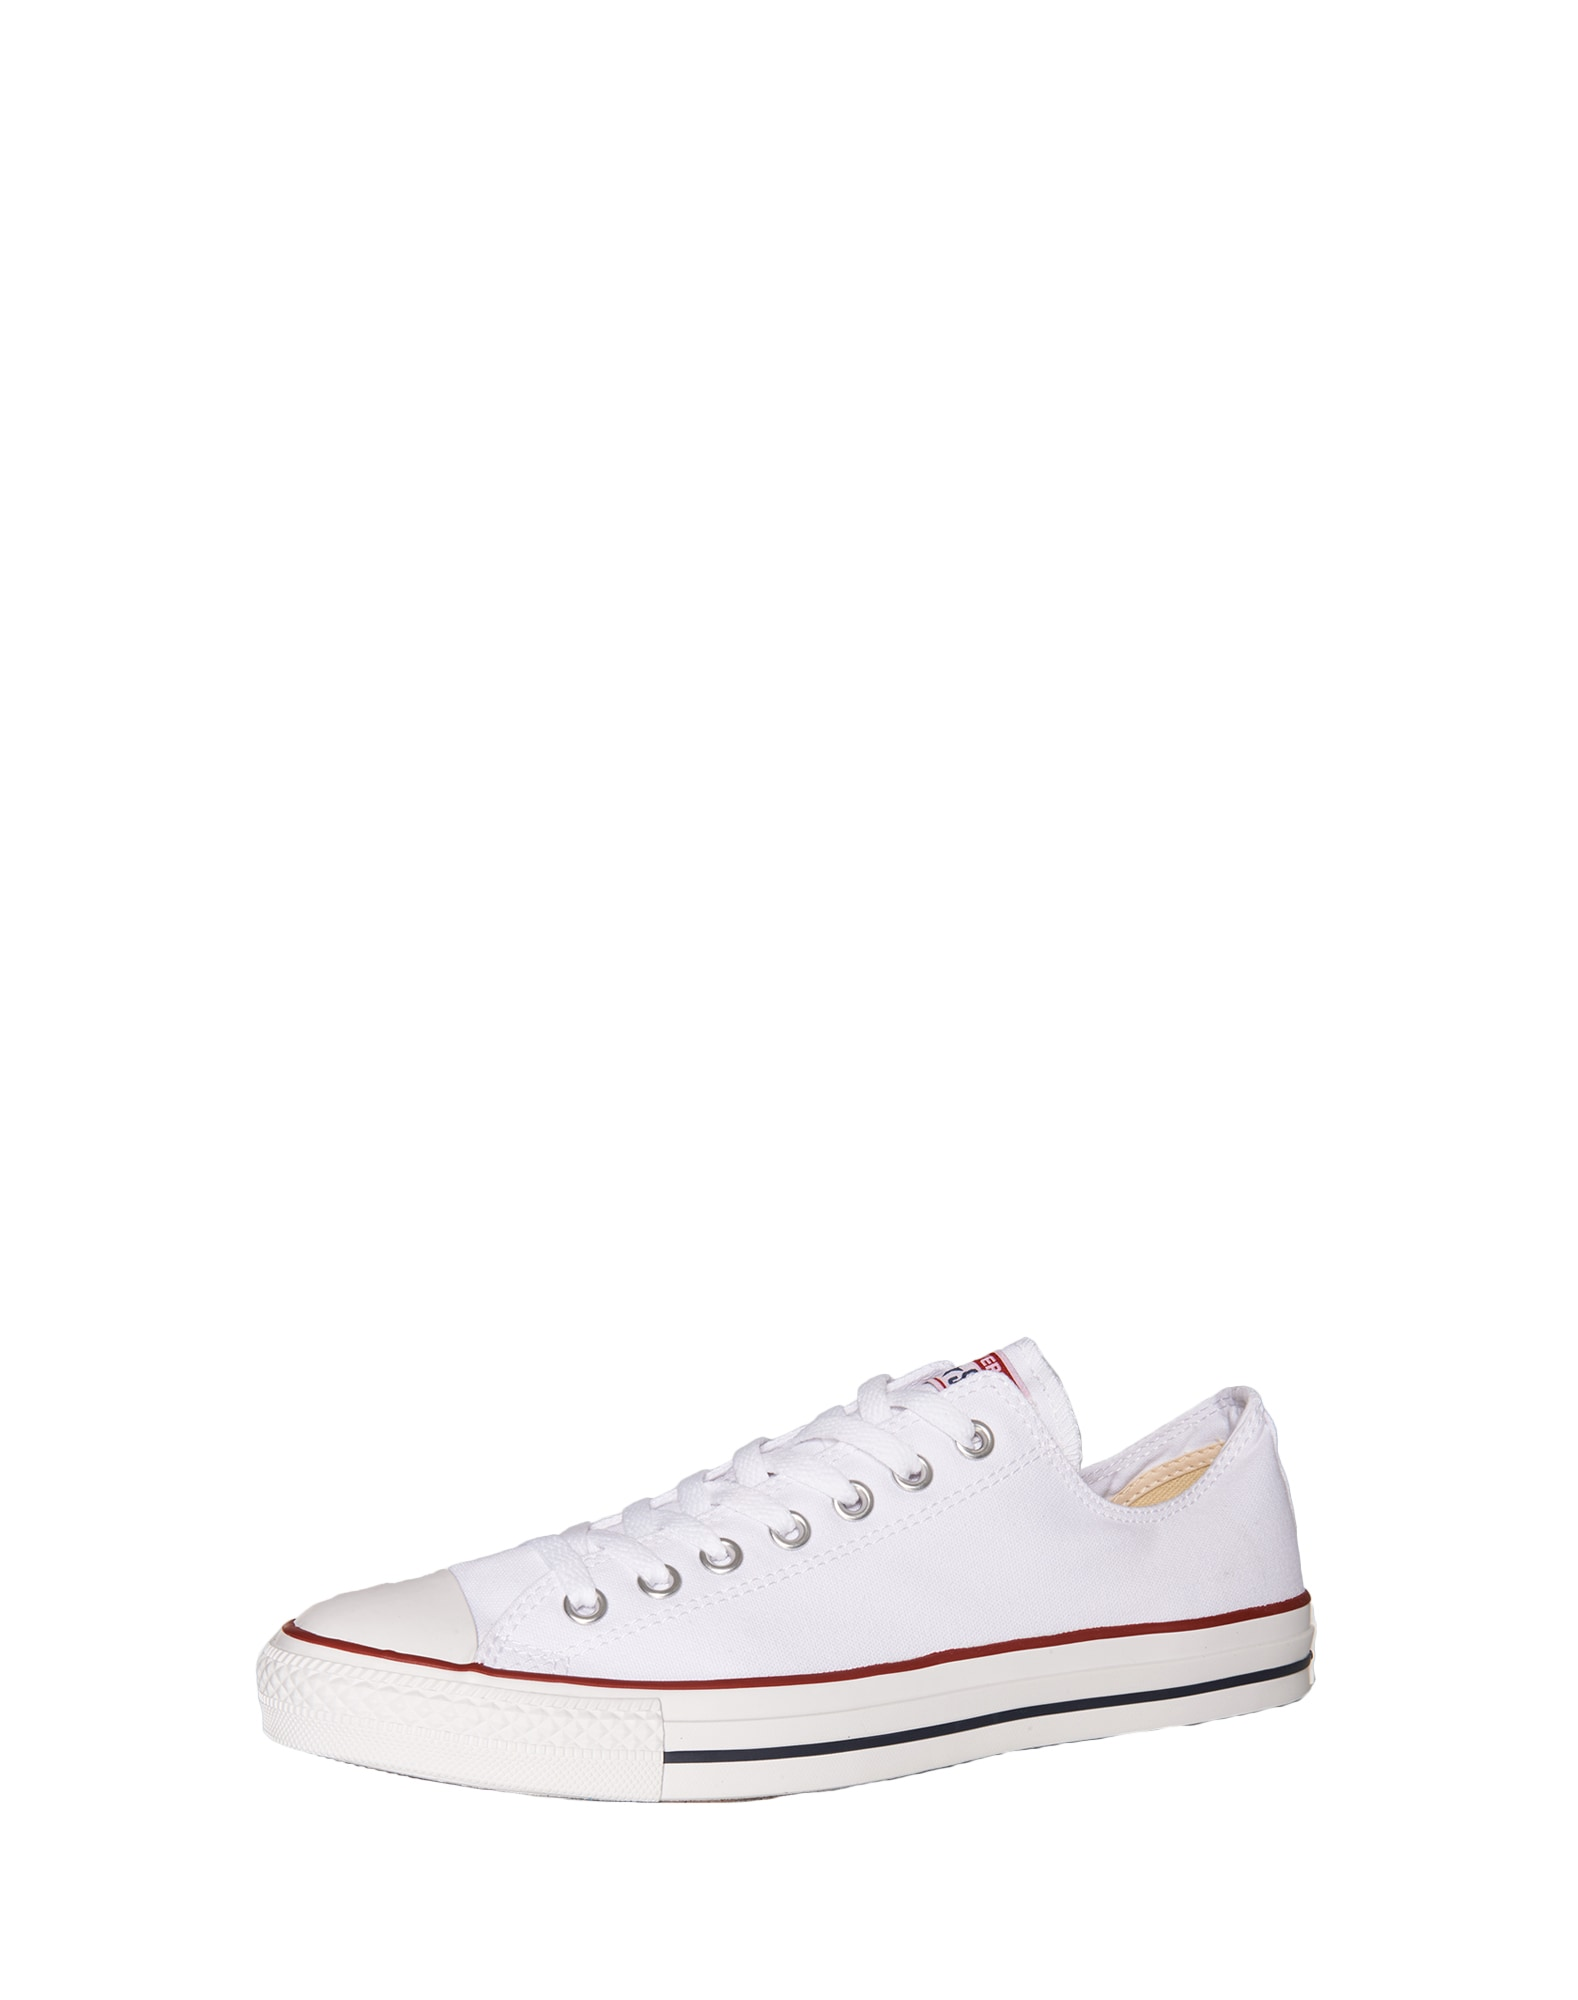 CONVERSE, Heren Sneakers laag 'Chuck Taylor All Star Ox', wit